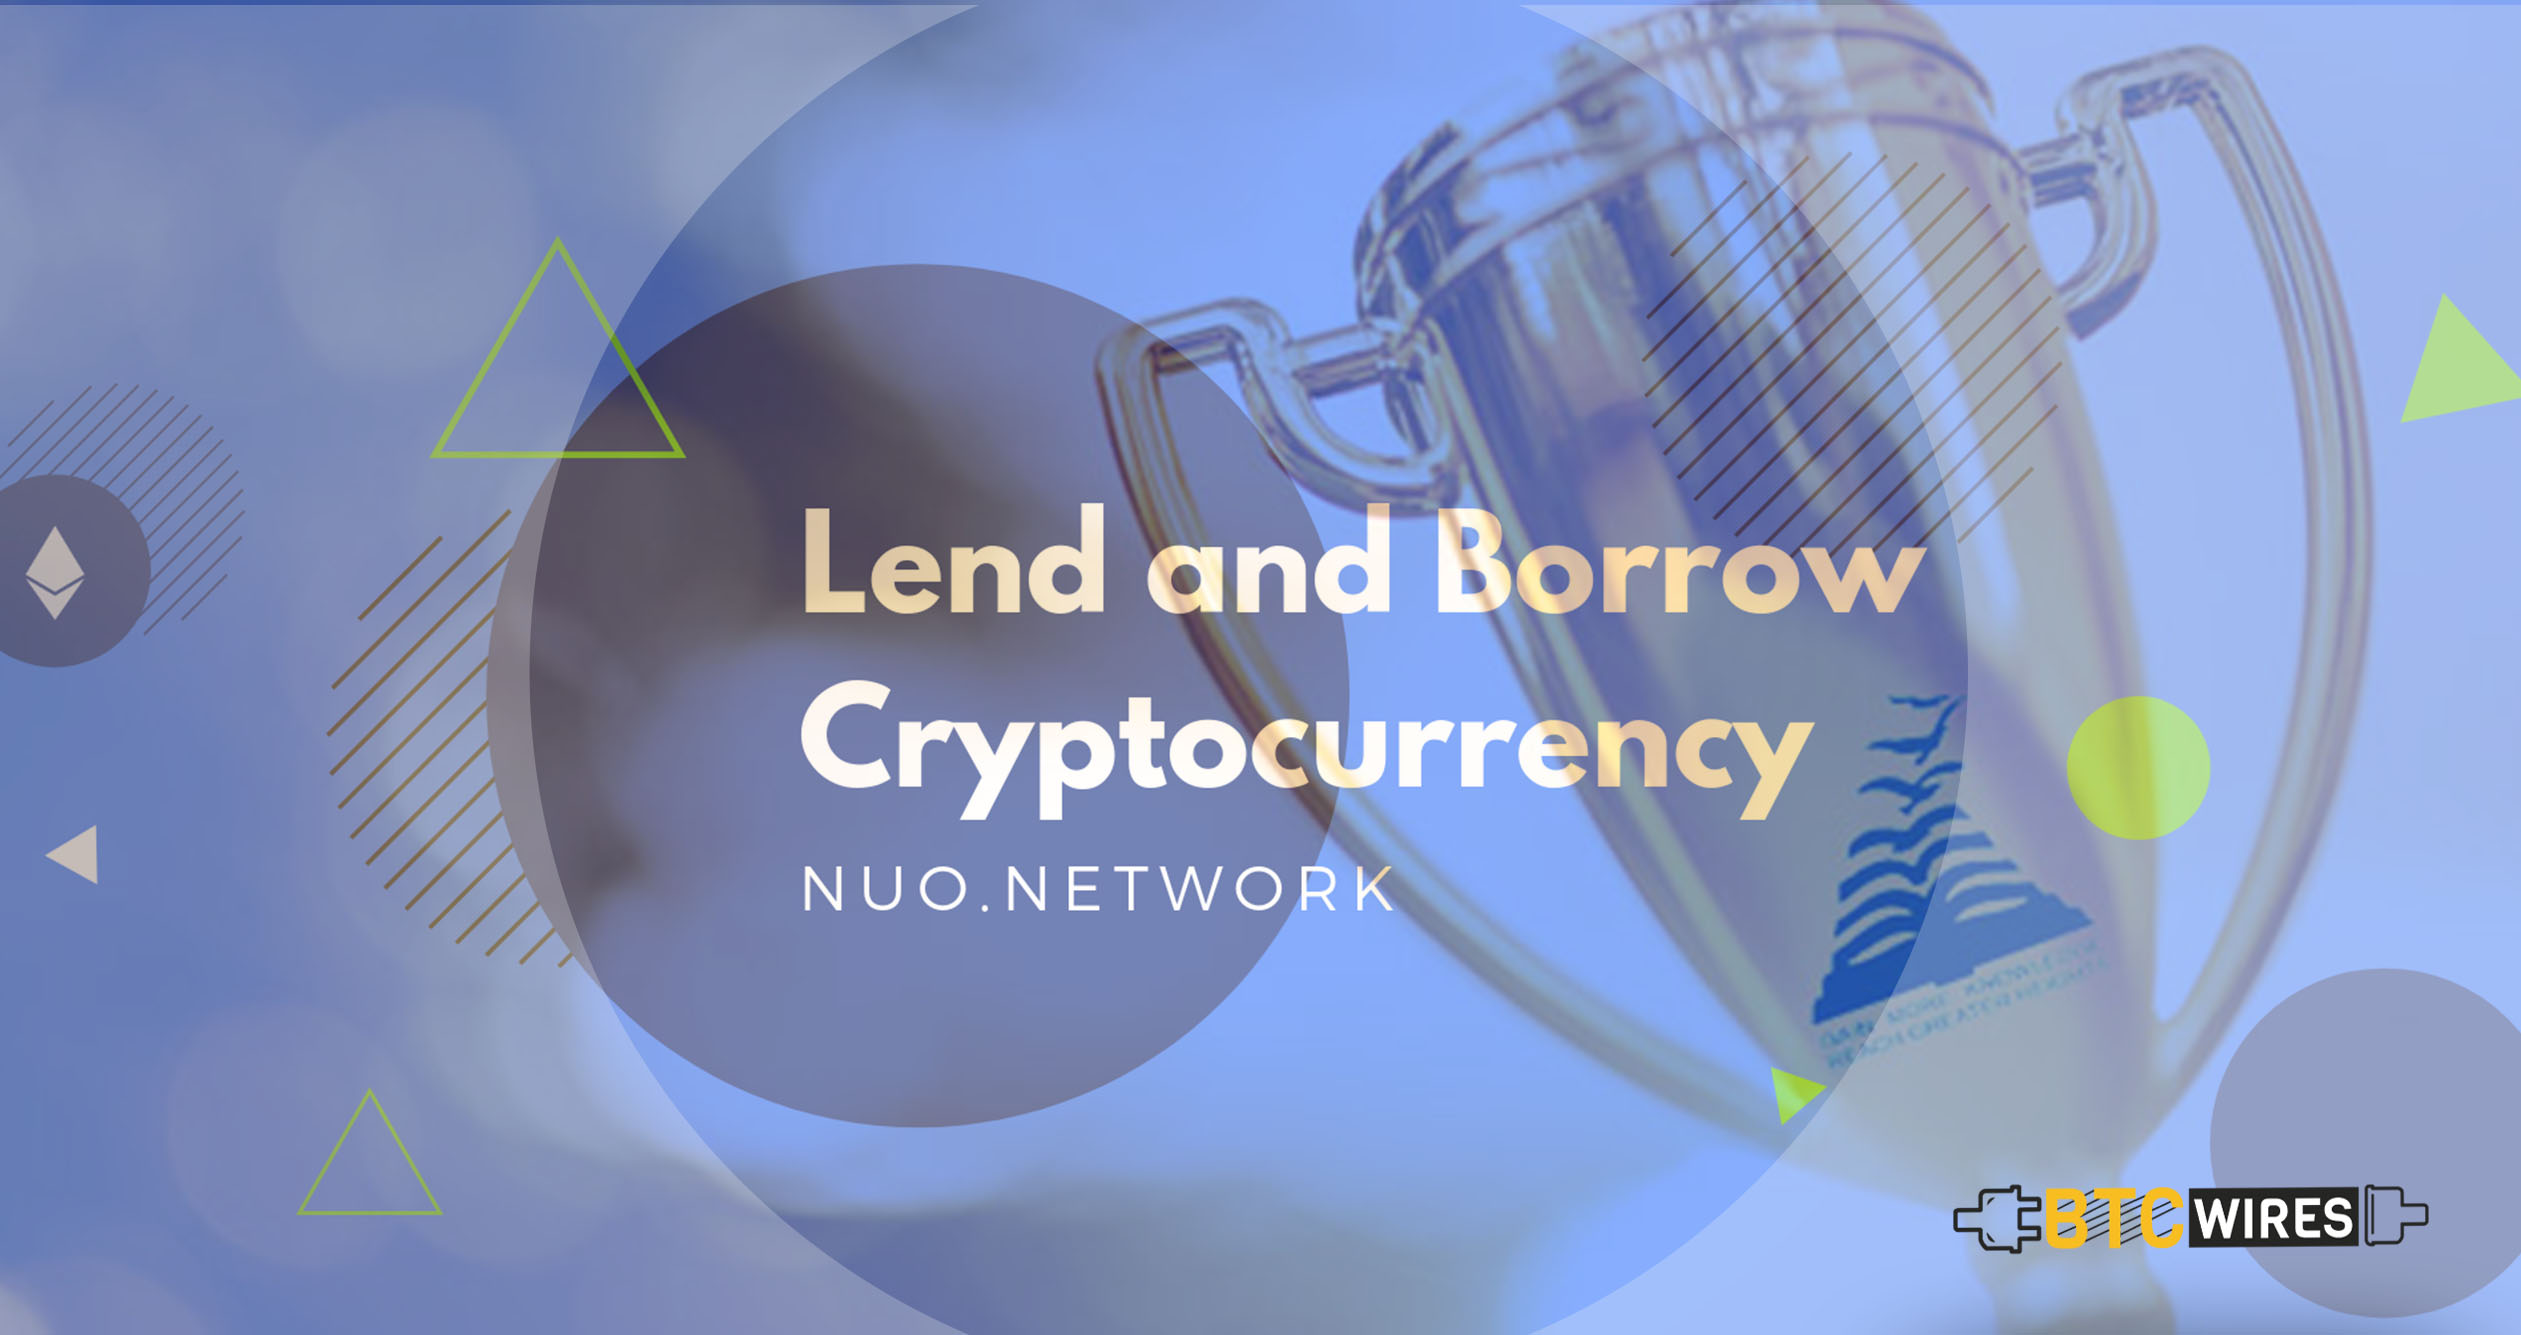 Nuo Network